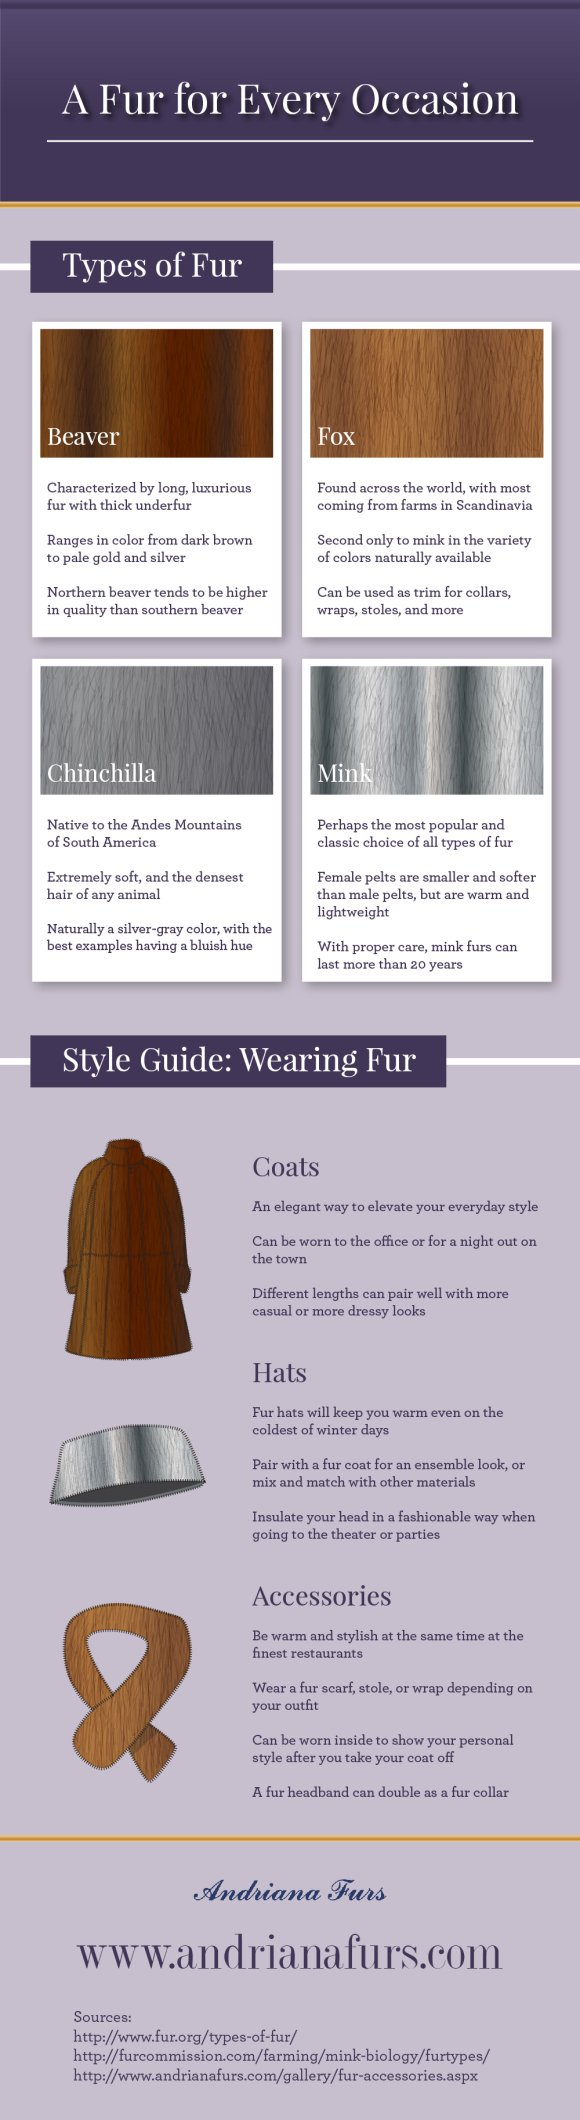 A Fur For Every Occasion Infographic